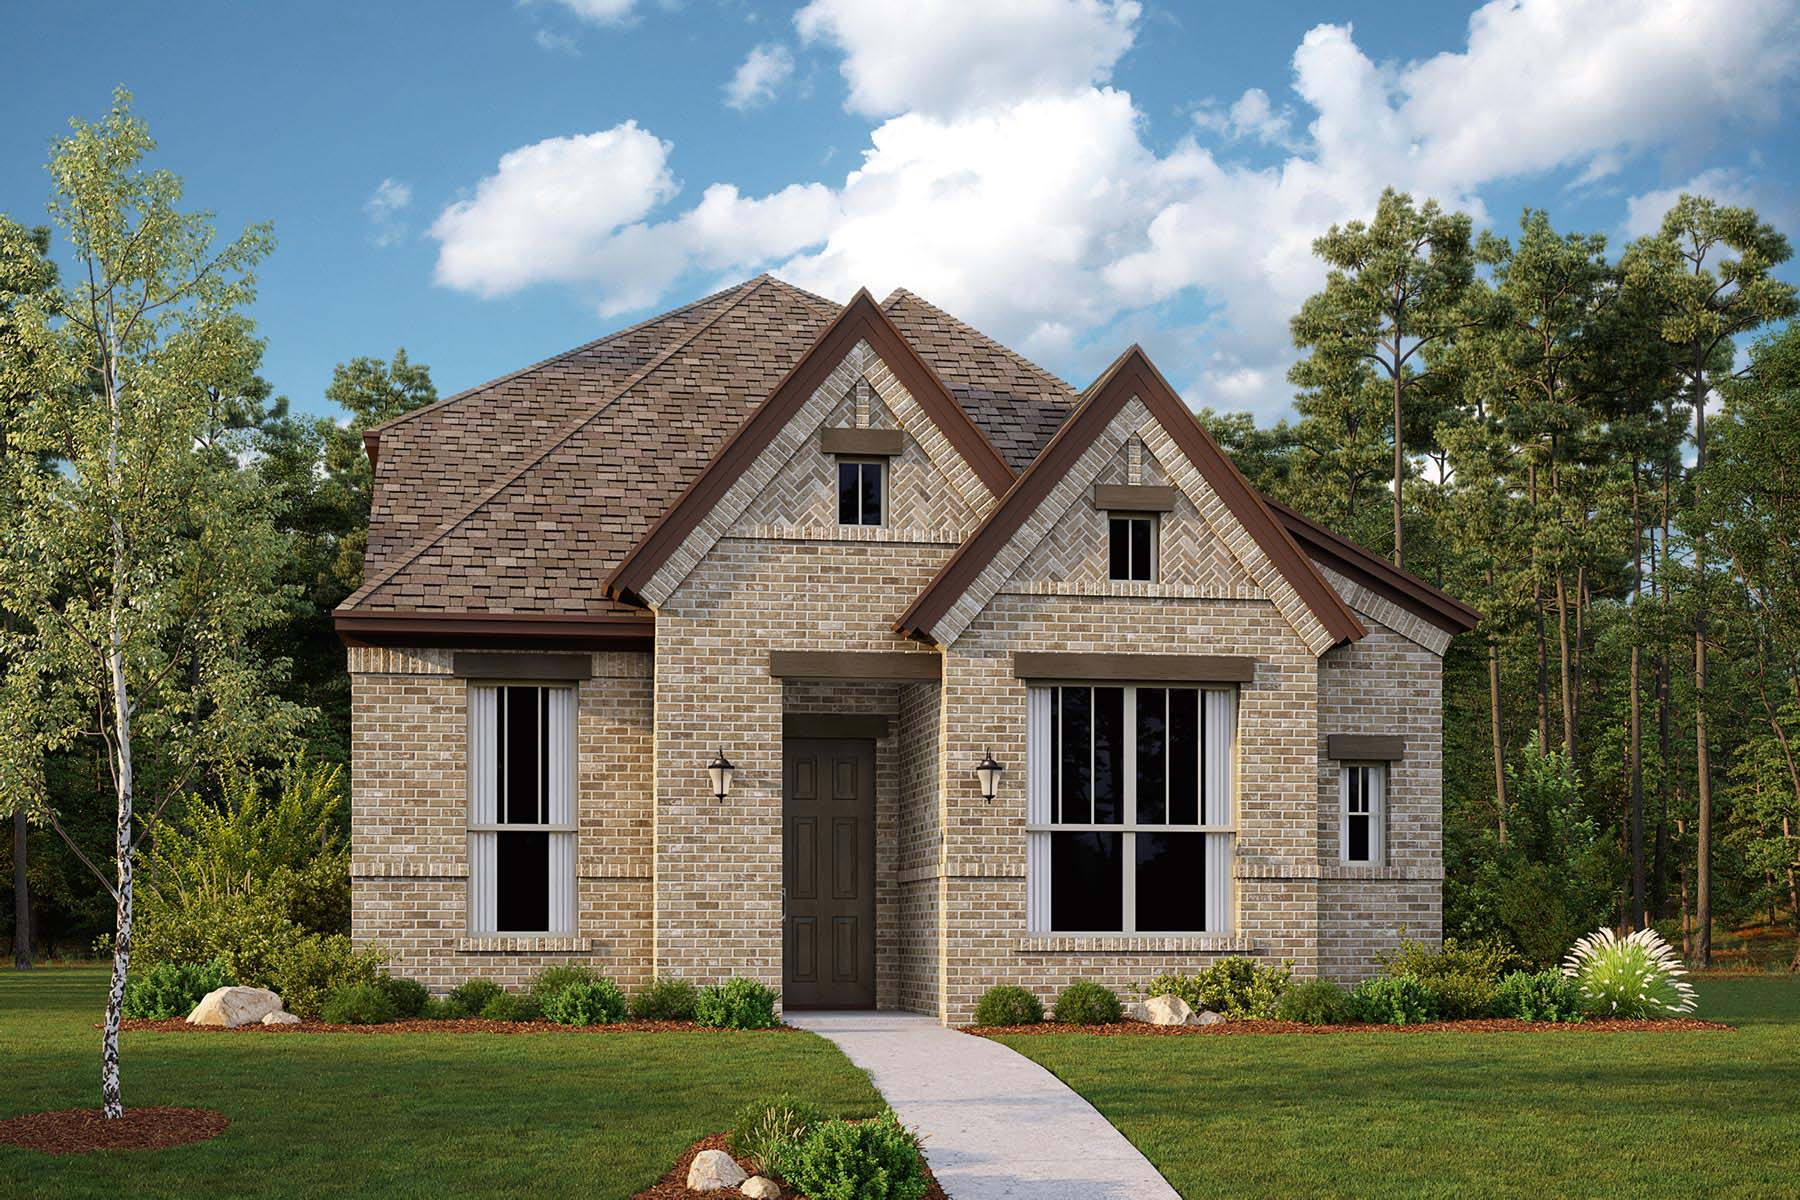 Willow Plan Elevation Front at Kensington Place in Farmers Branch Texas by Mattamy Homes